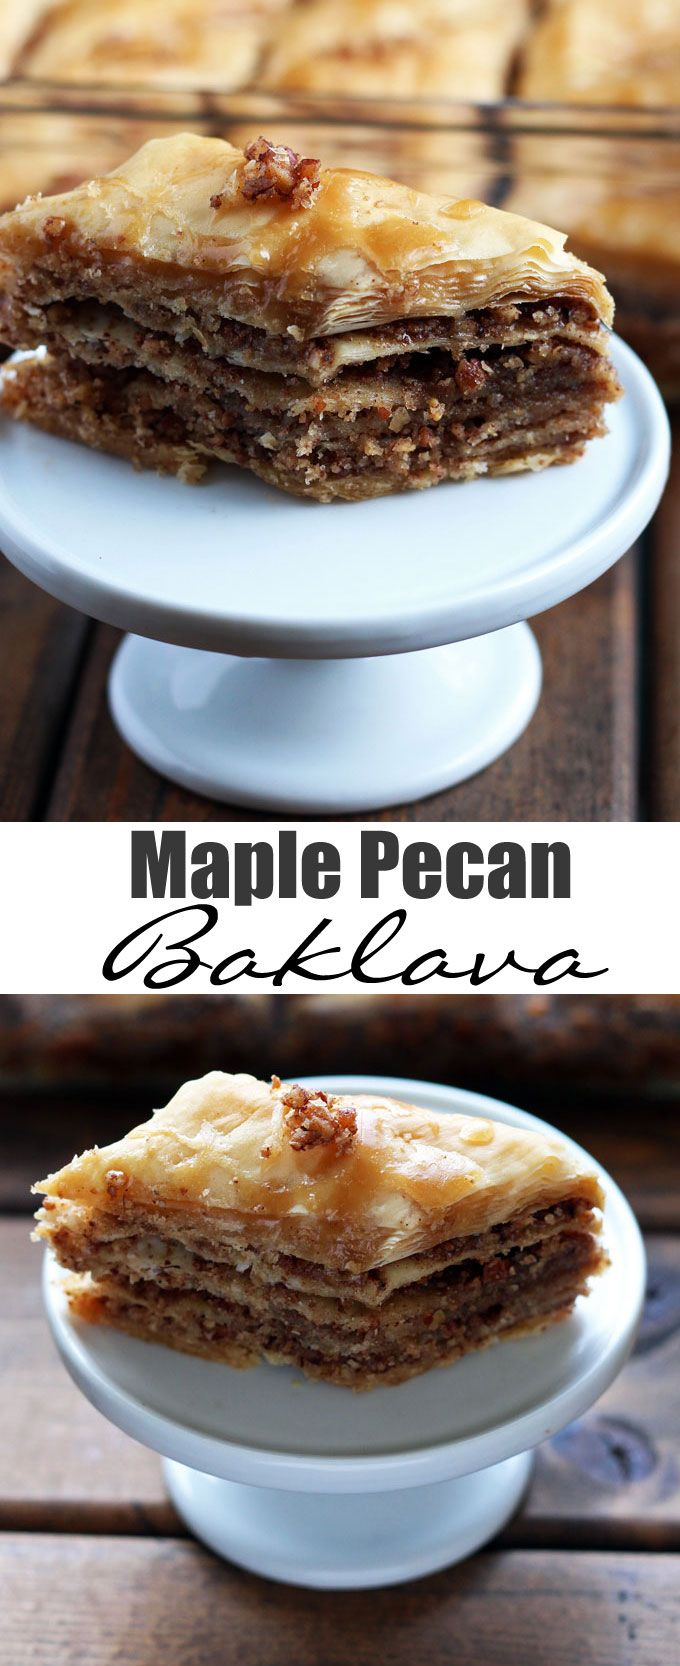 Maple Pecan Baklava - crisp phyllo dough layers with toasted pecans soaked in aromatic maple syrup. This baklava version is refined sugar-free.